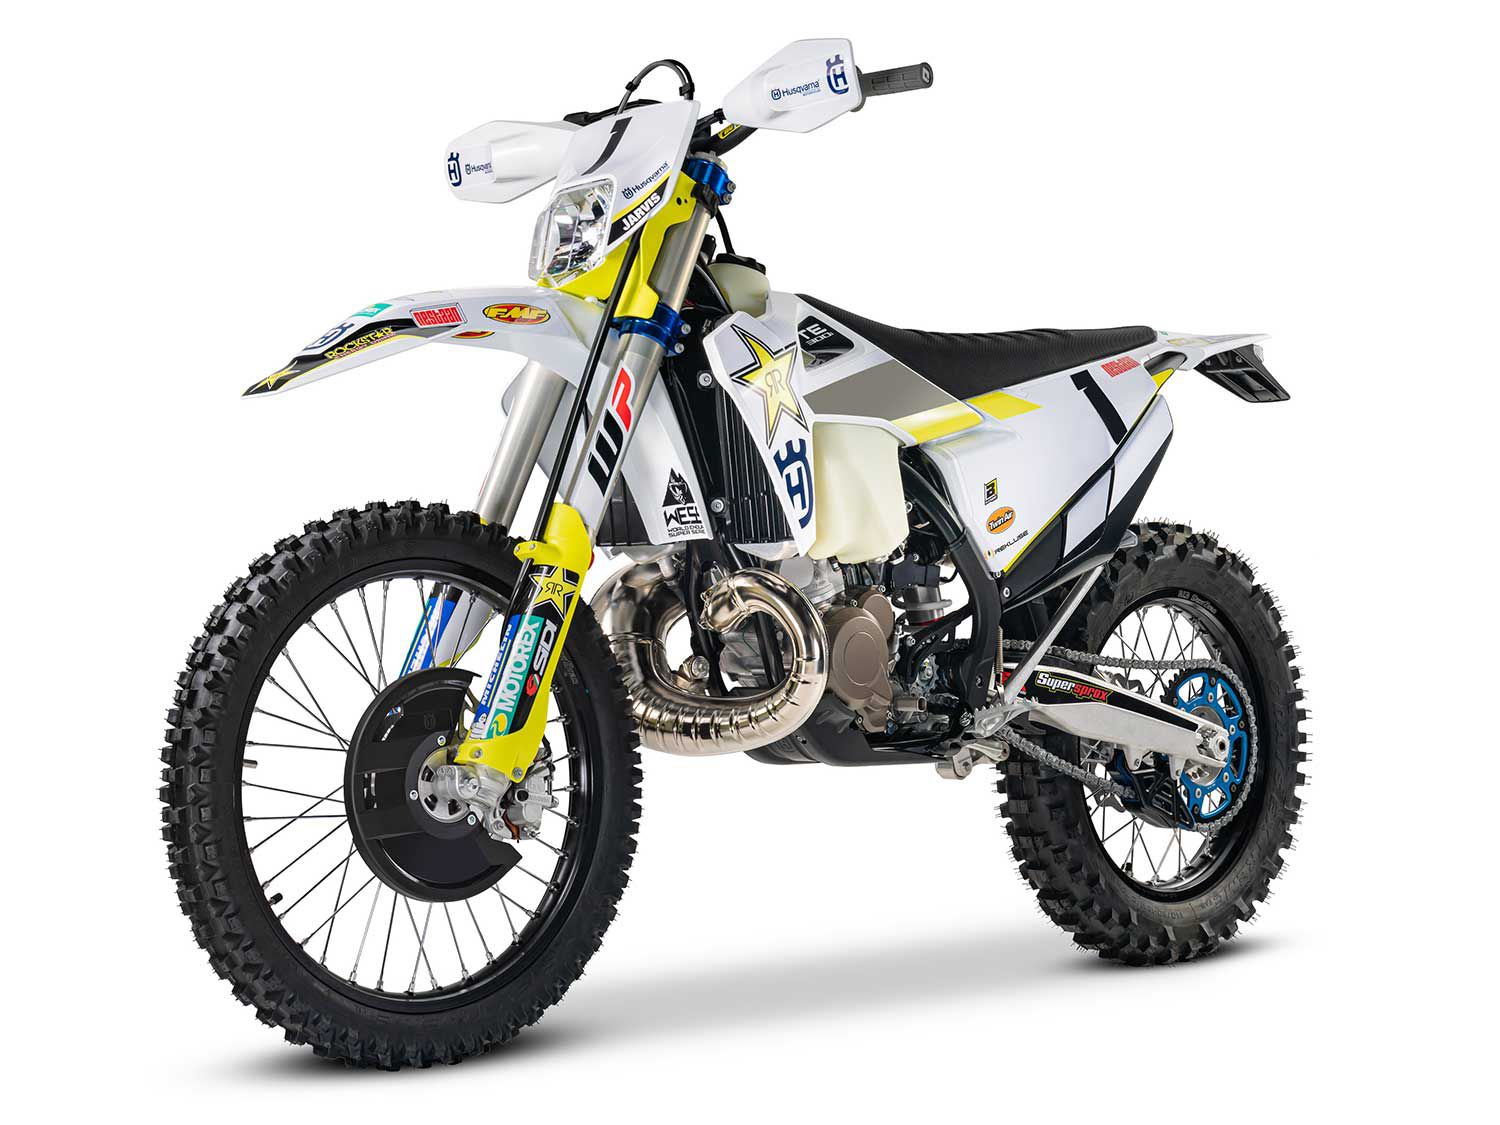 <h2>2020 Husqvarna Jarvis Edition of the TE 300i</h2> </br> Husqvarna pays tribute to Rockstar Energy Husqvarna factory racer Graham Jarvis with the 2020 Jarvis Edition of the TE 300i.